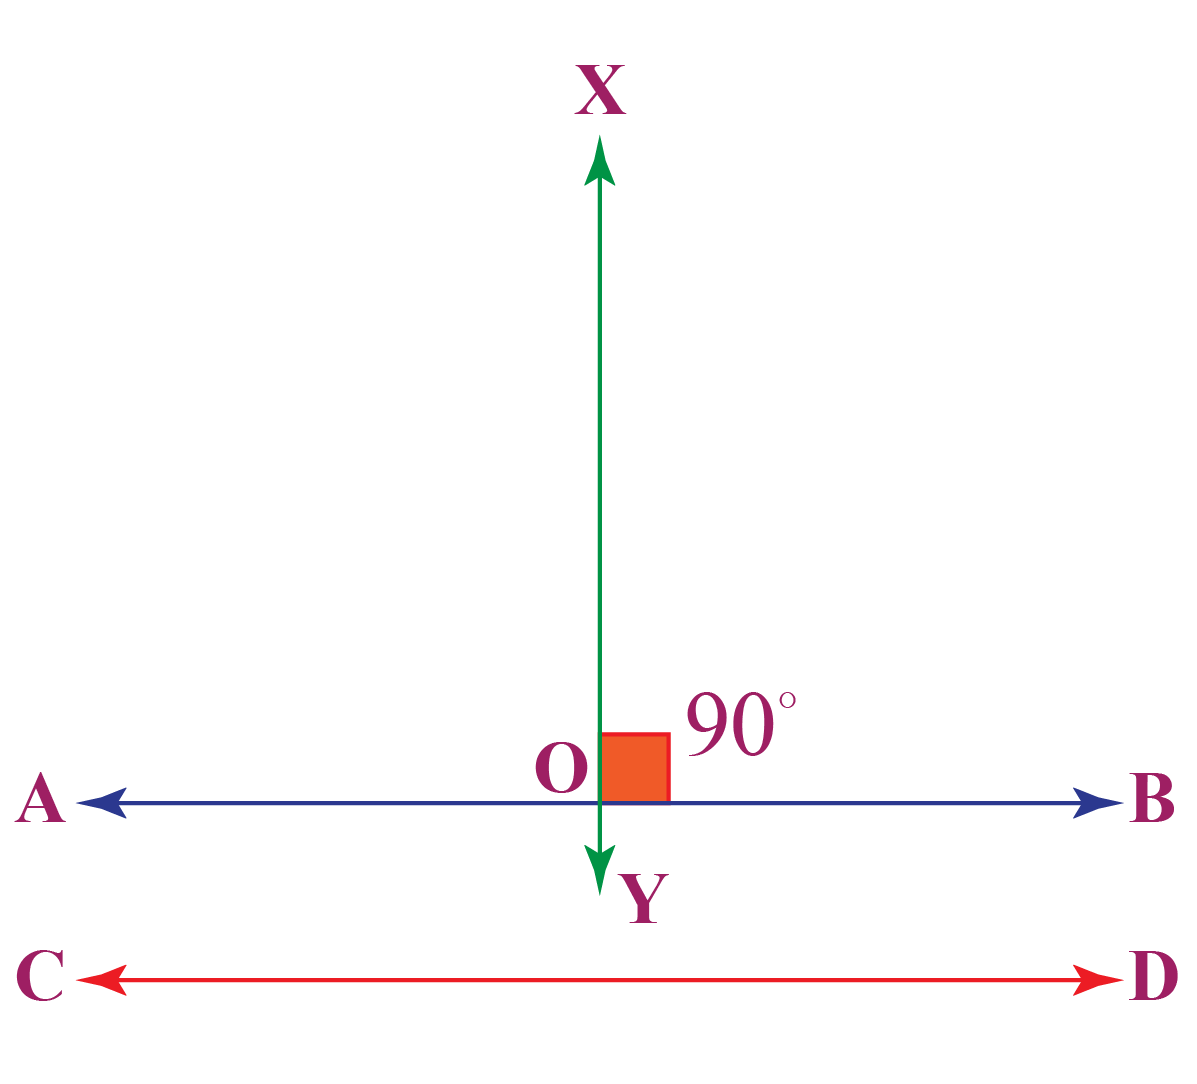 Example 4 question